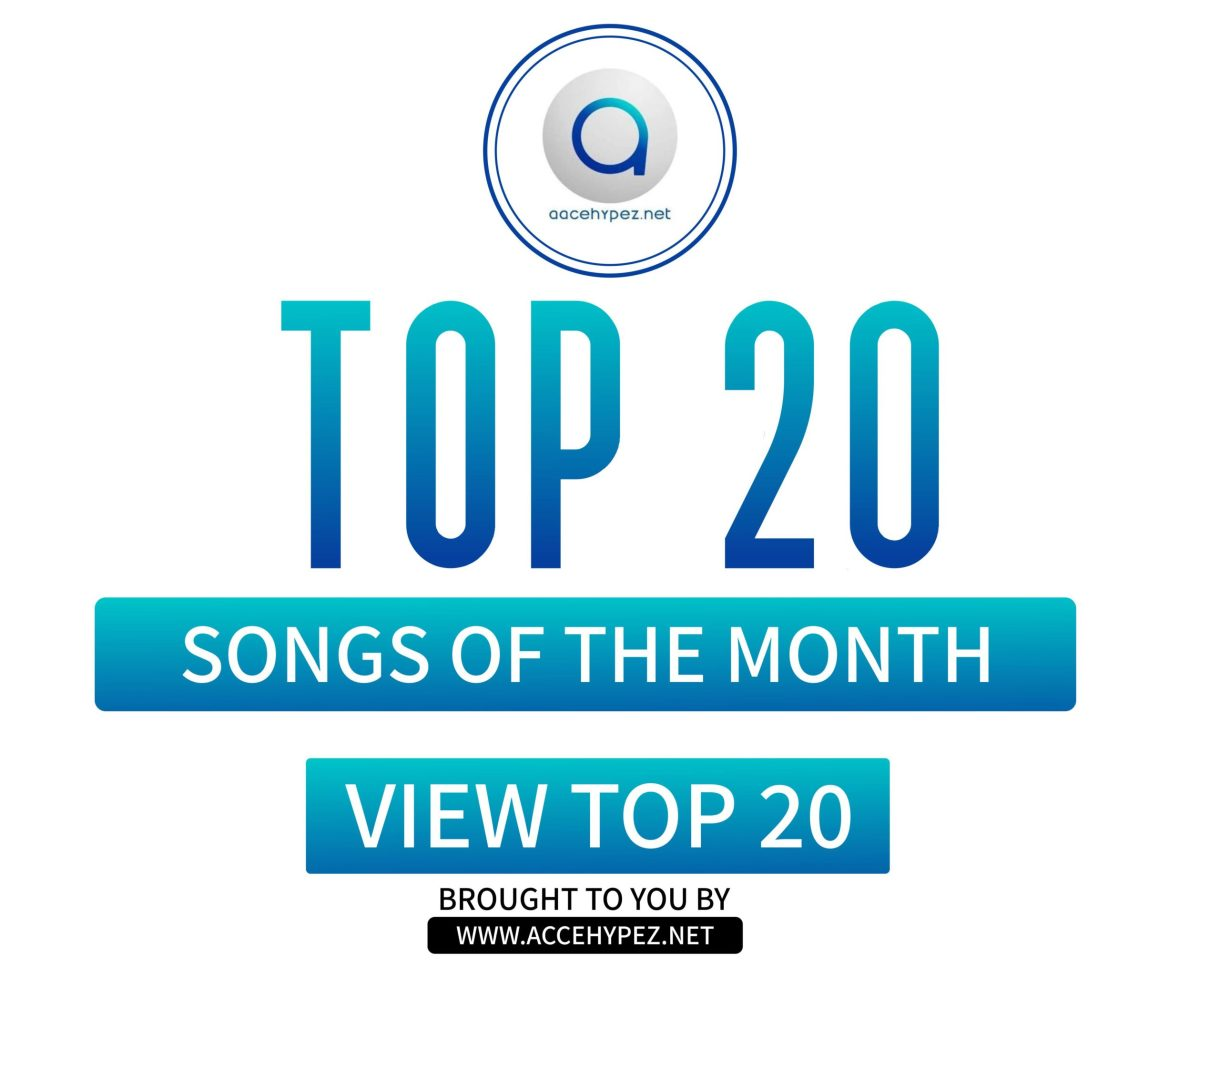 Top 20 Songs For The Month – April 2020 Edition